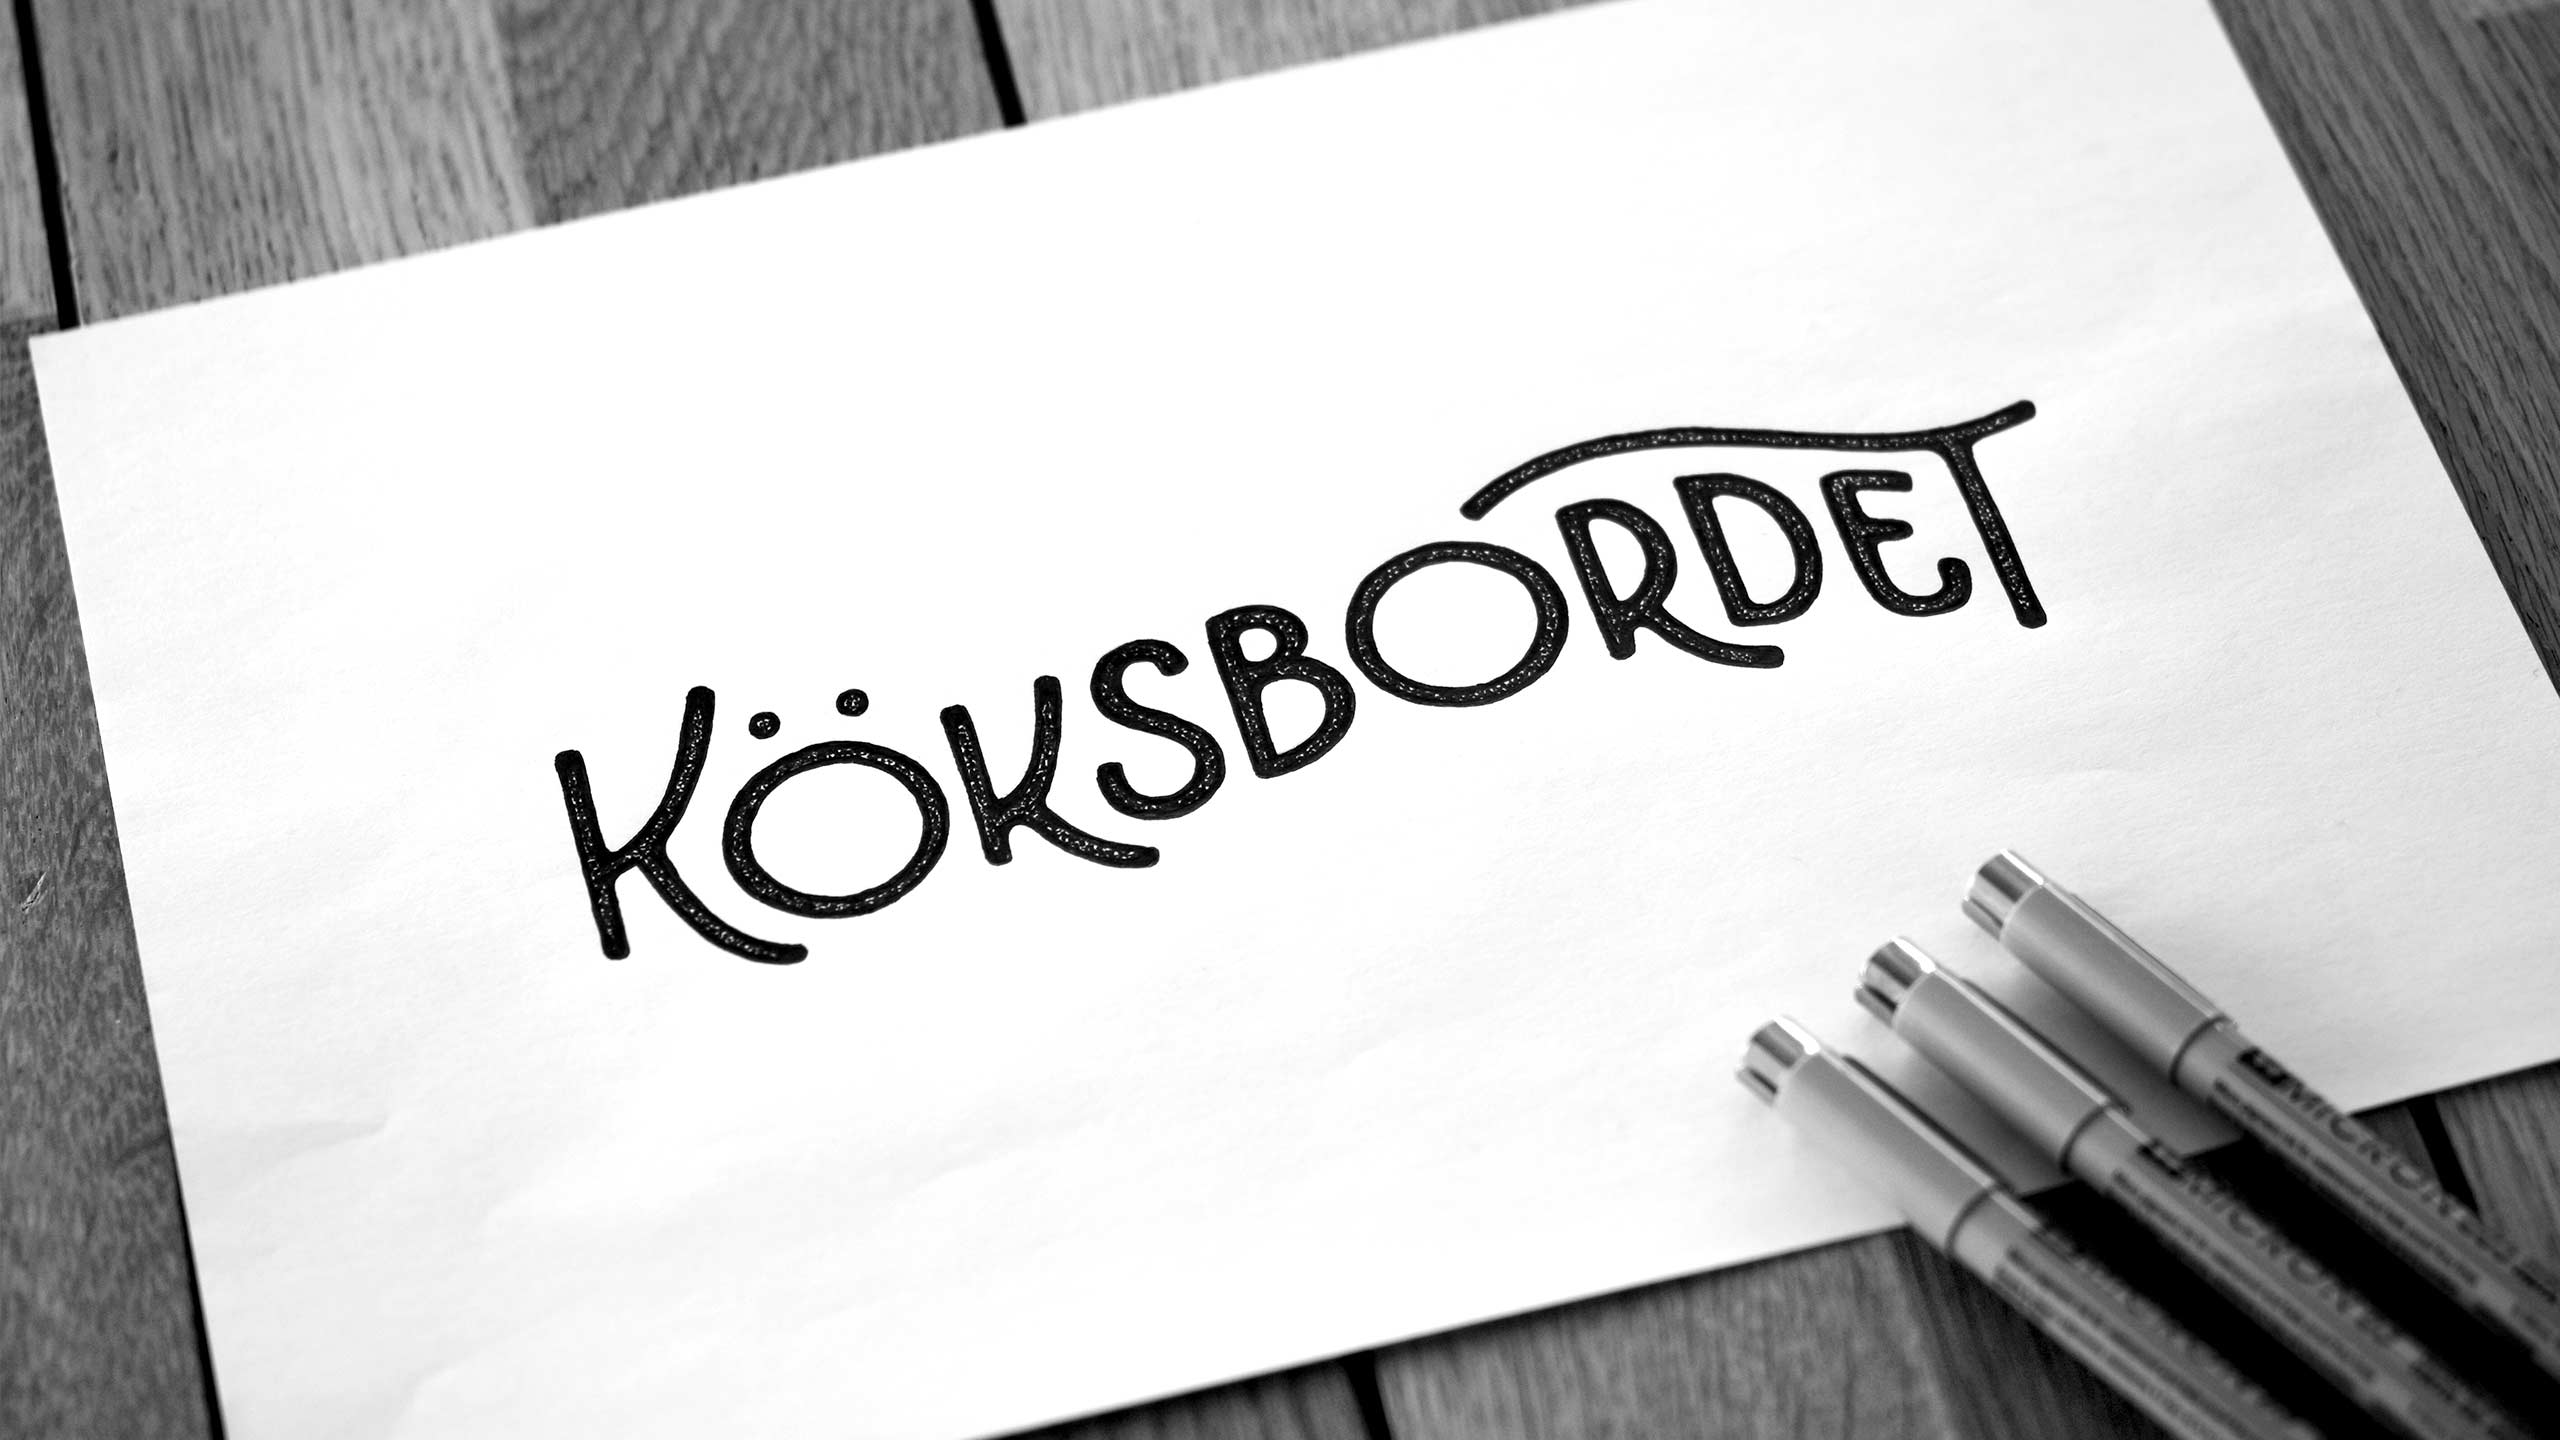 Inked sketch for Köksbordet